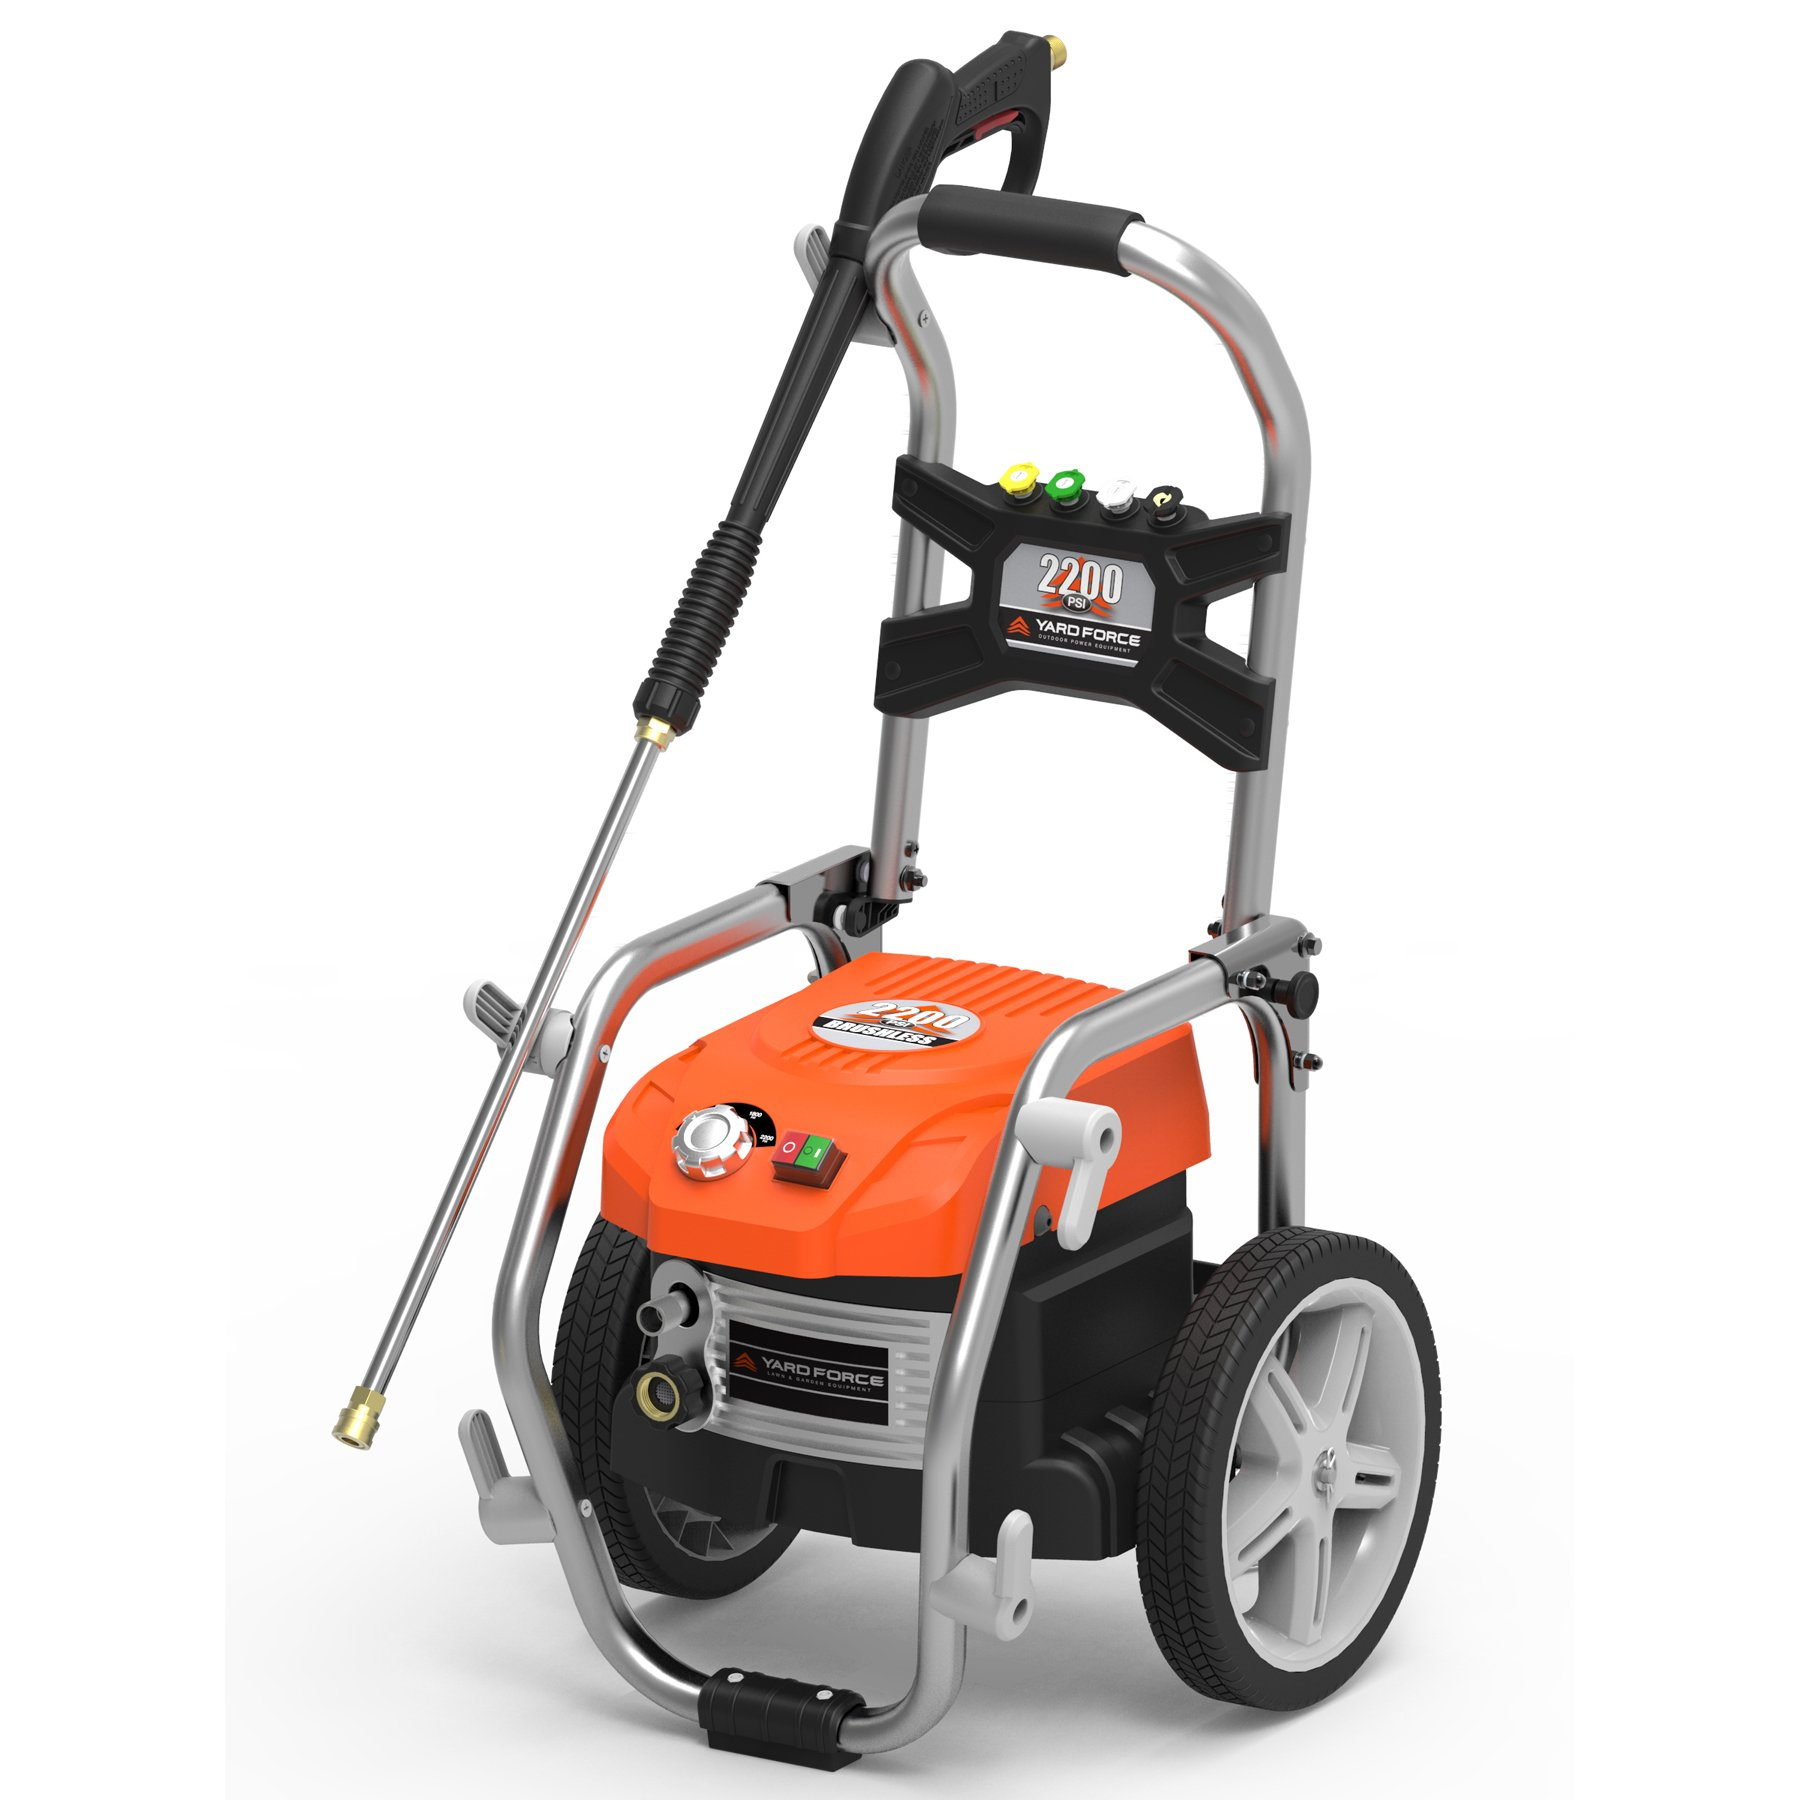 Yard Force YF2200BL Electric Brushless Pressure Washer 2200 PSI by YardForce (Image #1)